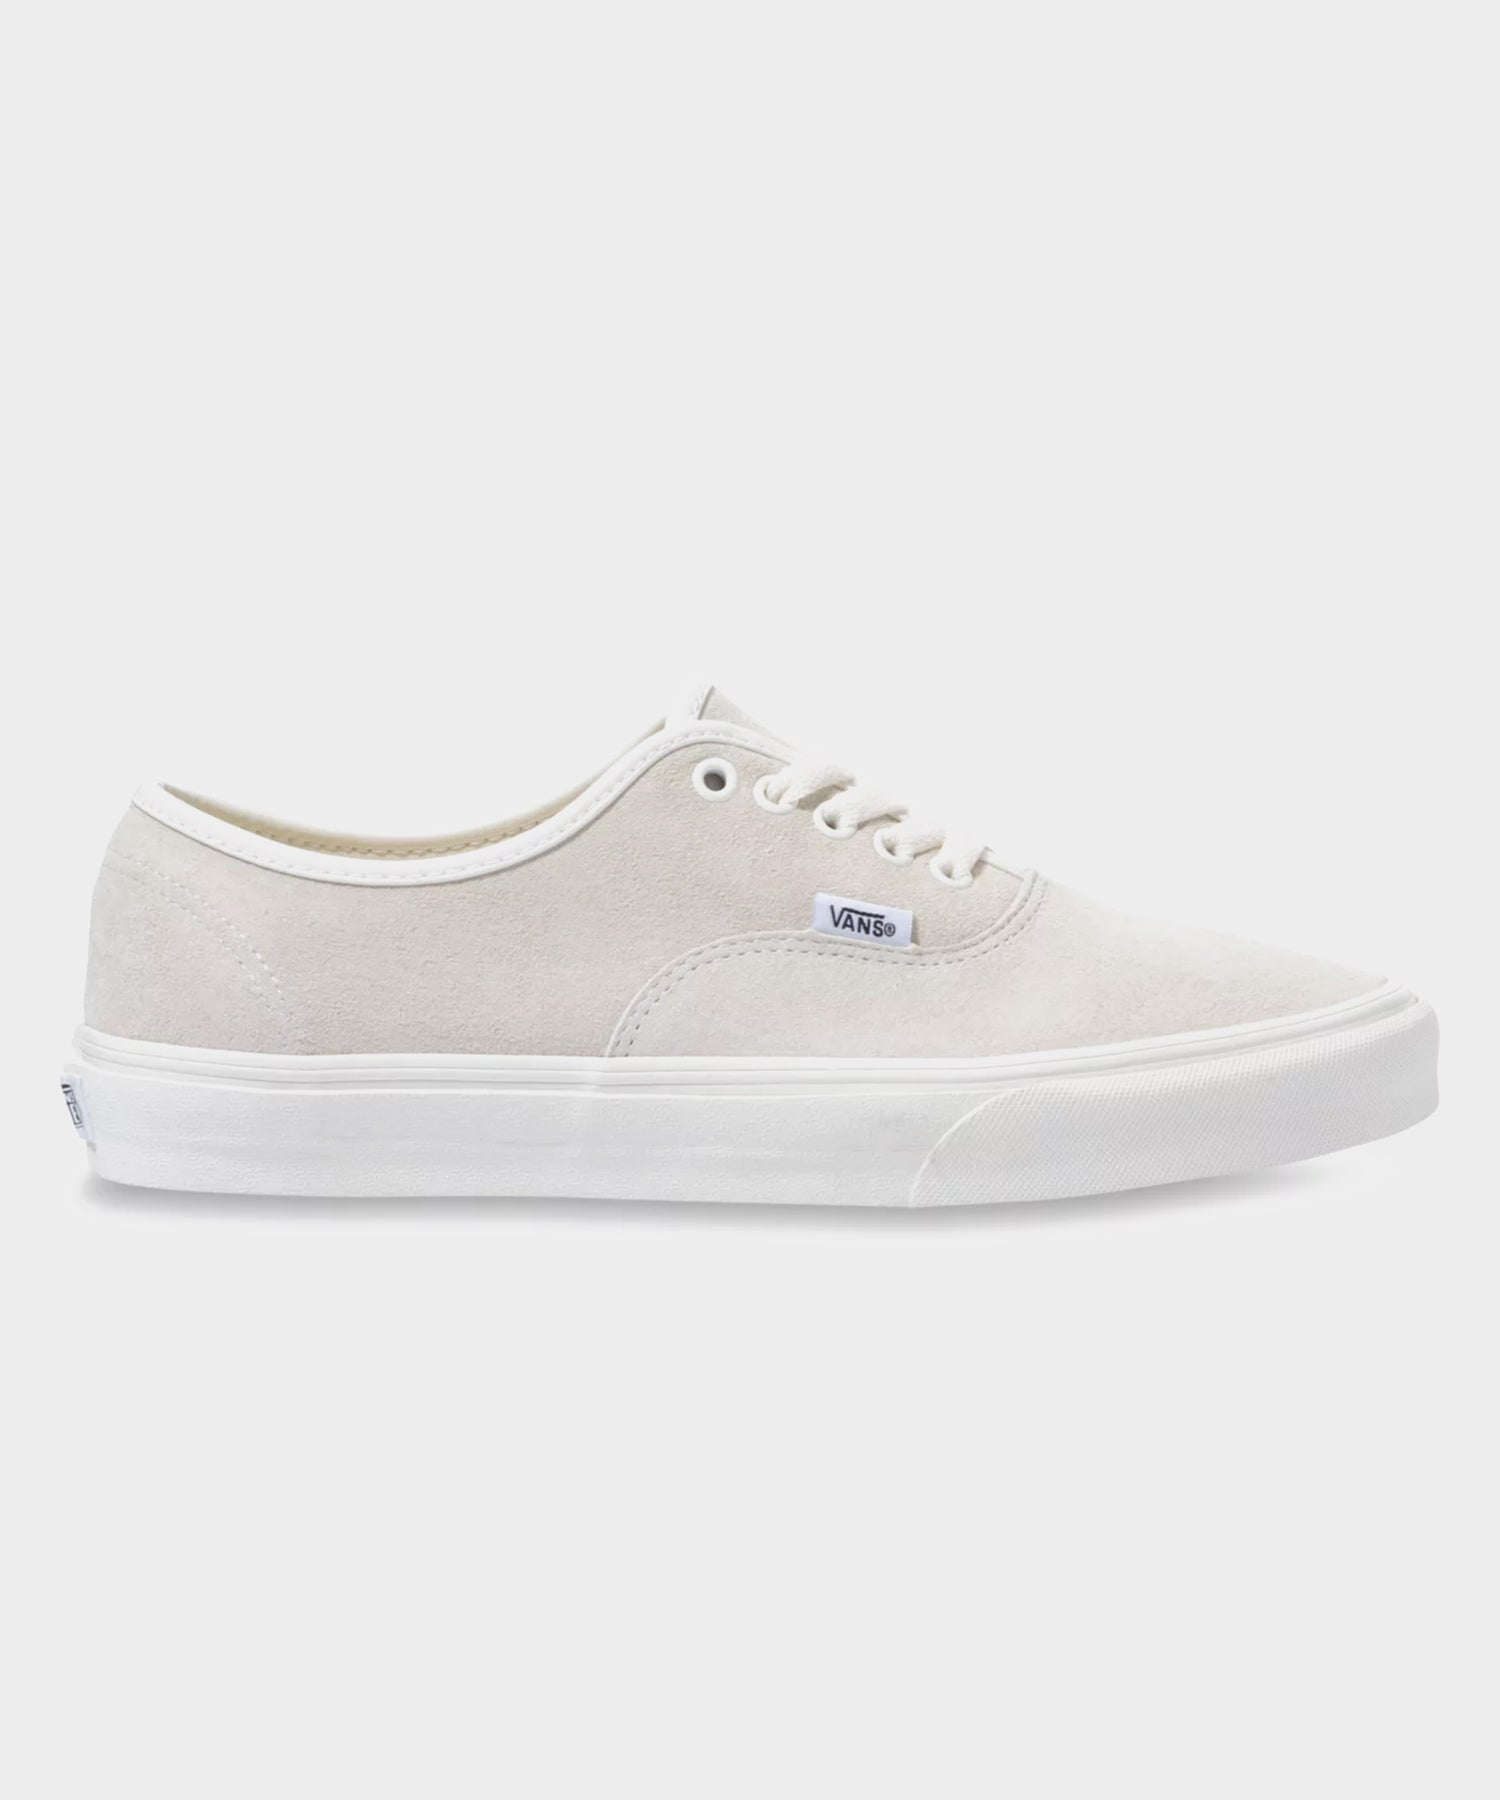 Vans Authentic Suede in Marshmallow